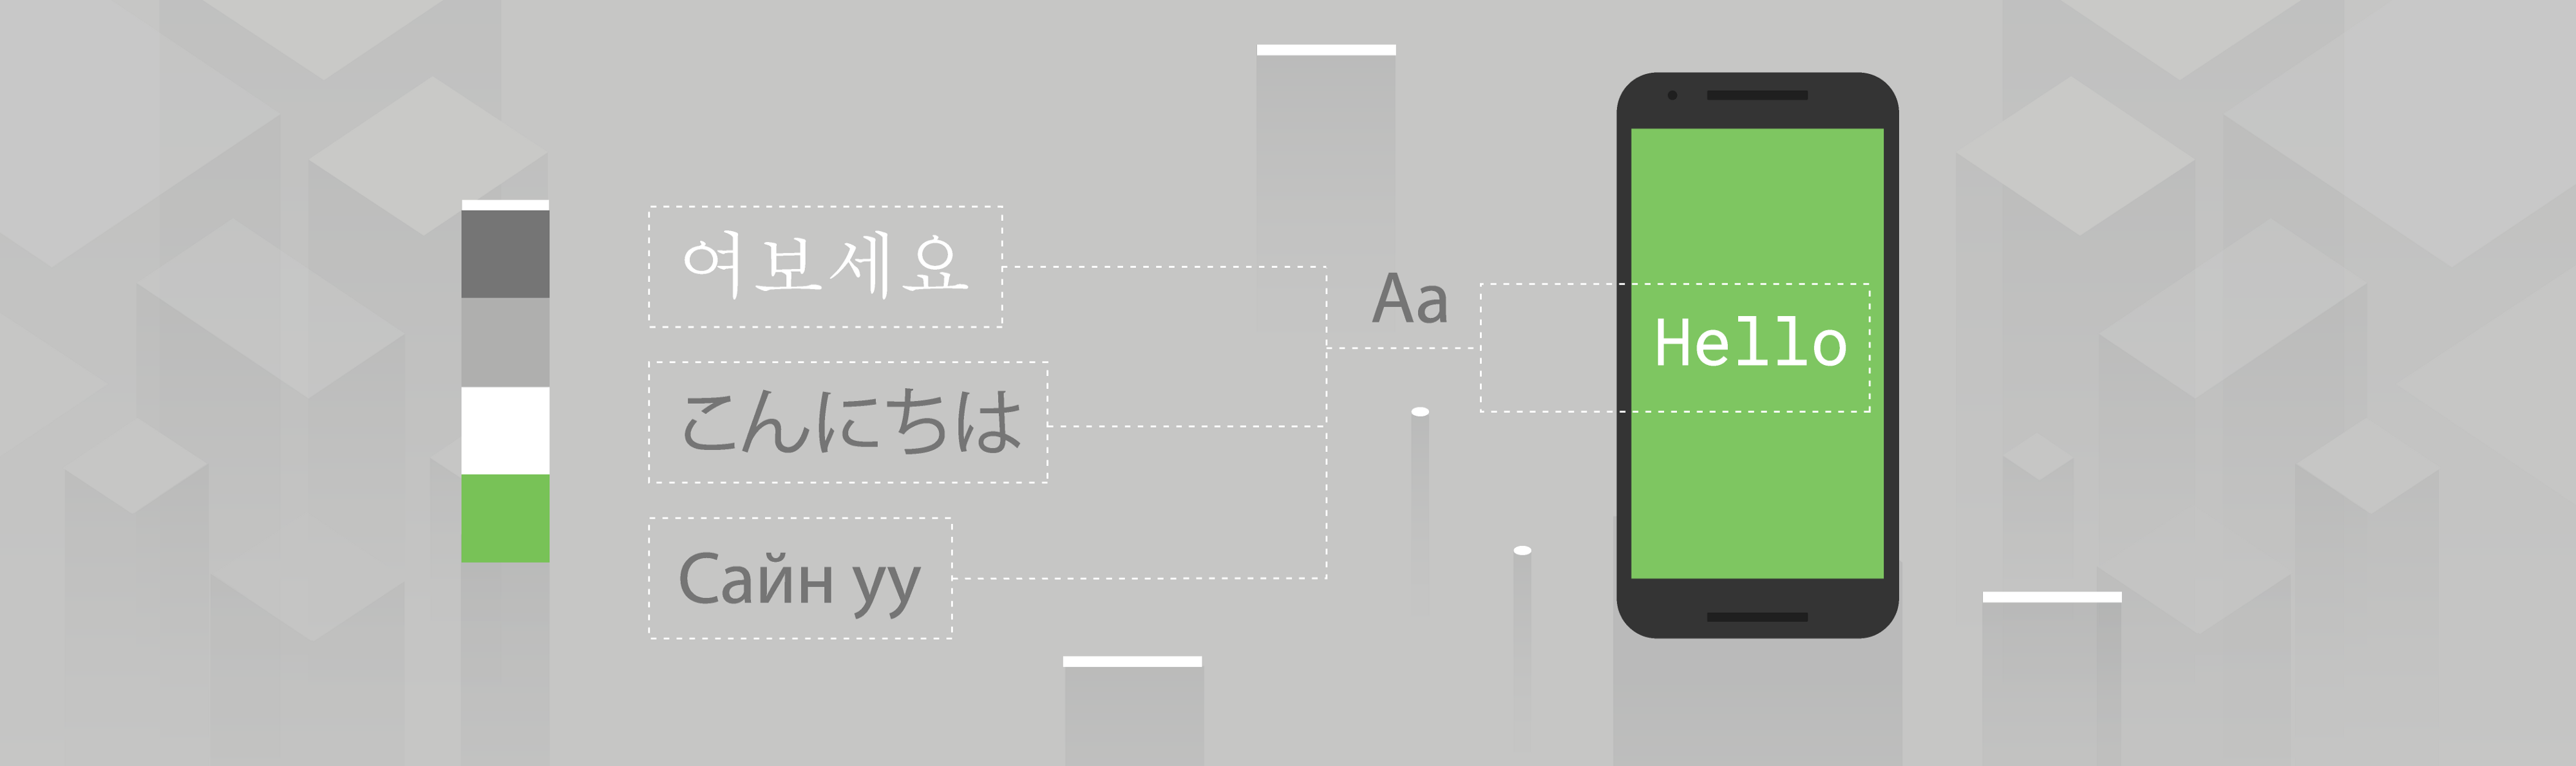 Styling internationalized text in Android - Android Developers - Medium